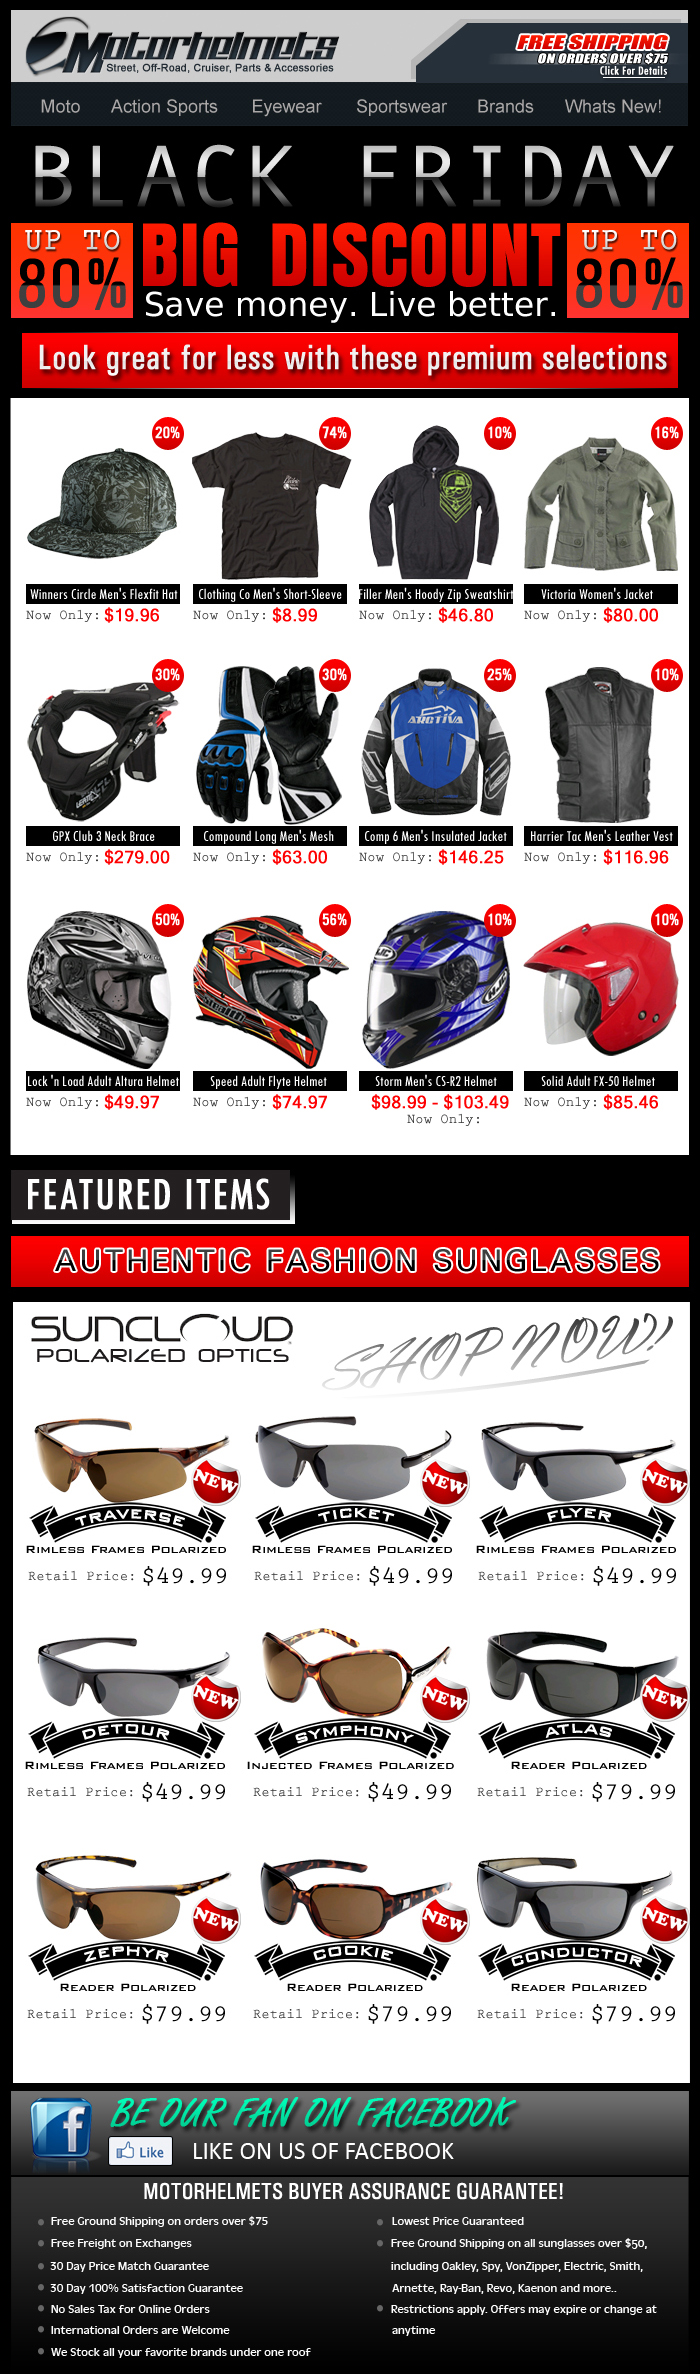 Early Black Friday Specials...up to 80% off on Premium Selections!